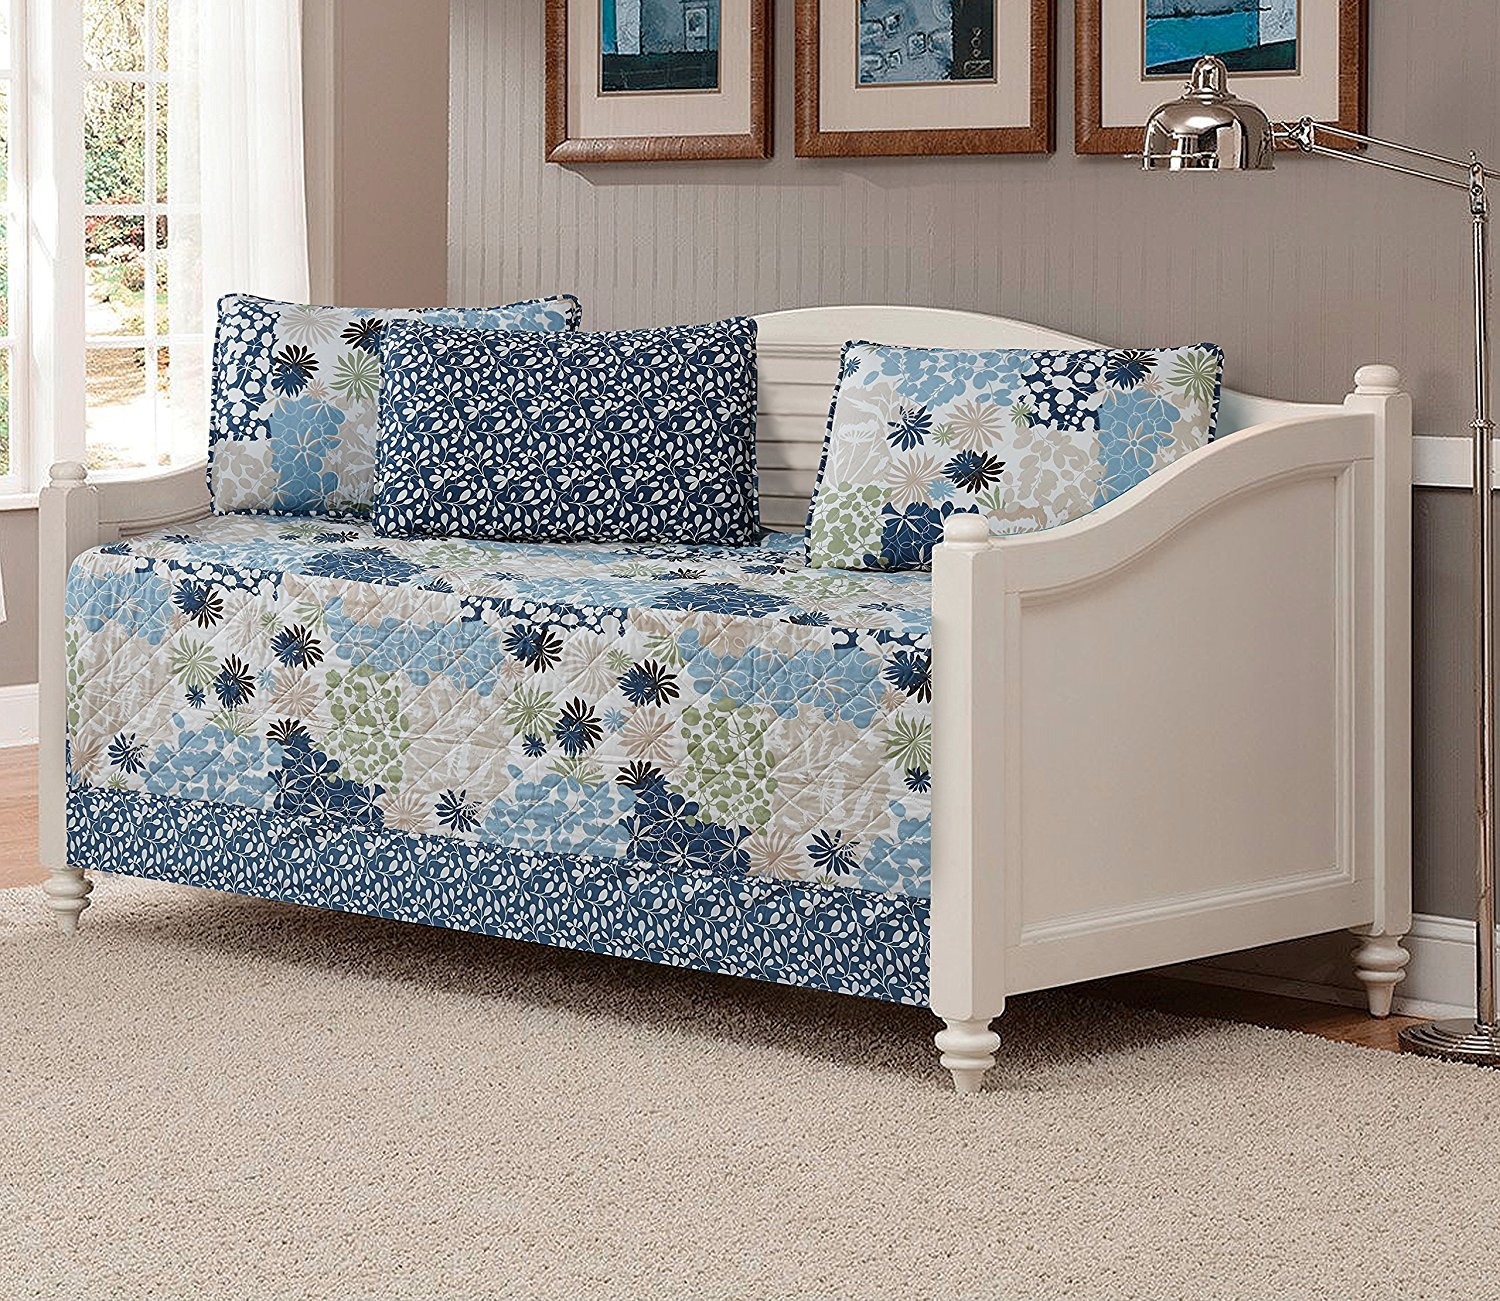 Linen Plus 5pc Daybed Cover Set Quilted Bedspread Floral Floral Beige Blue Green Off White by Linen Plus (Image #1)